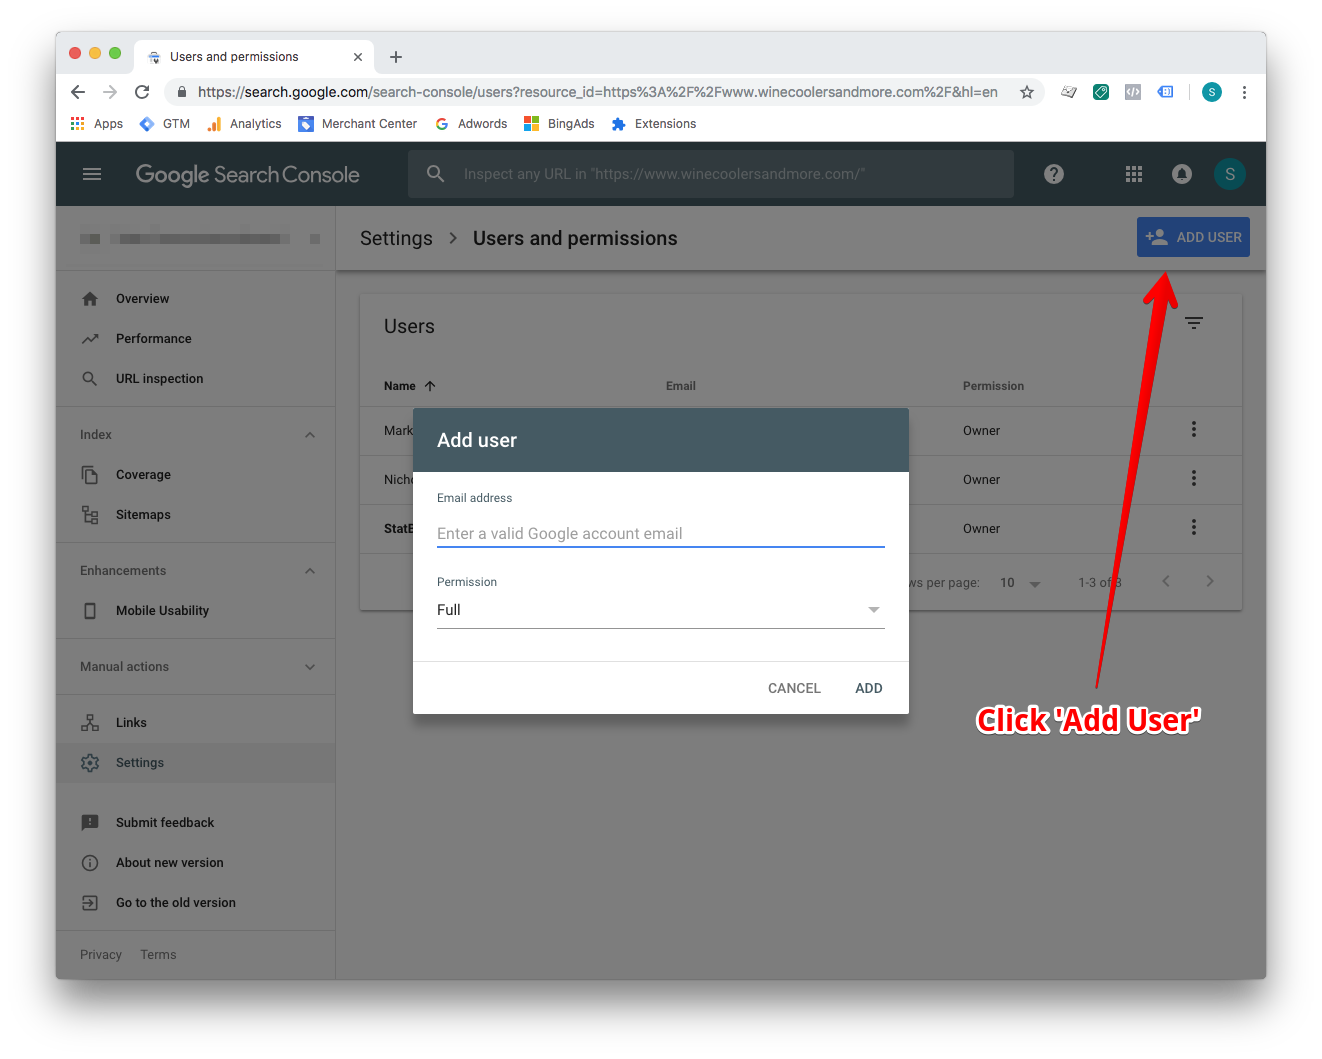 Next, click on the Add User button and enter the email address analytics@statbid.com with full permission.  Select Add and you are done.